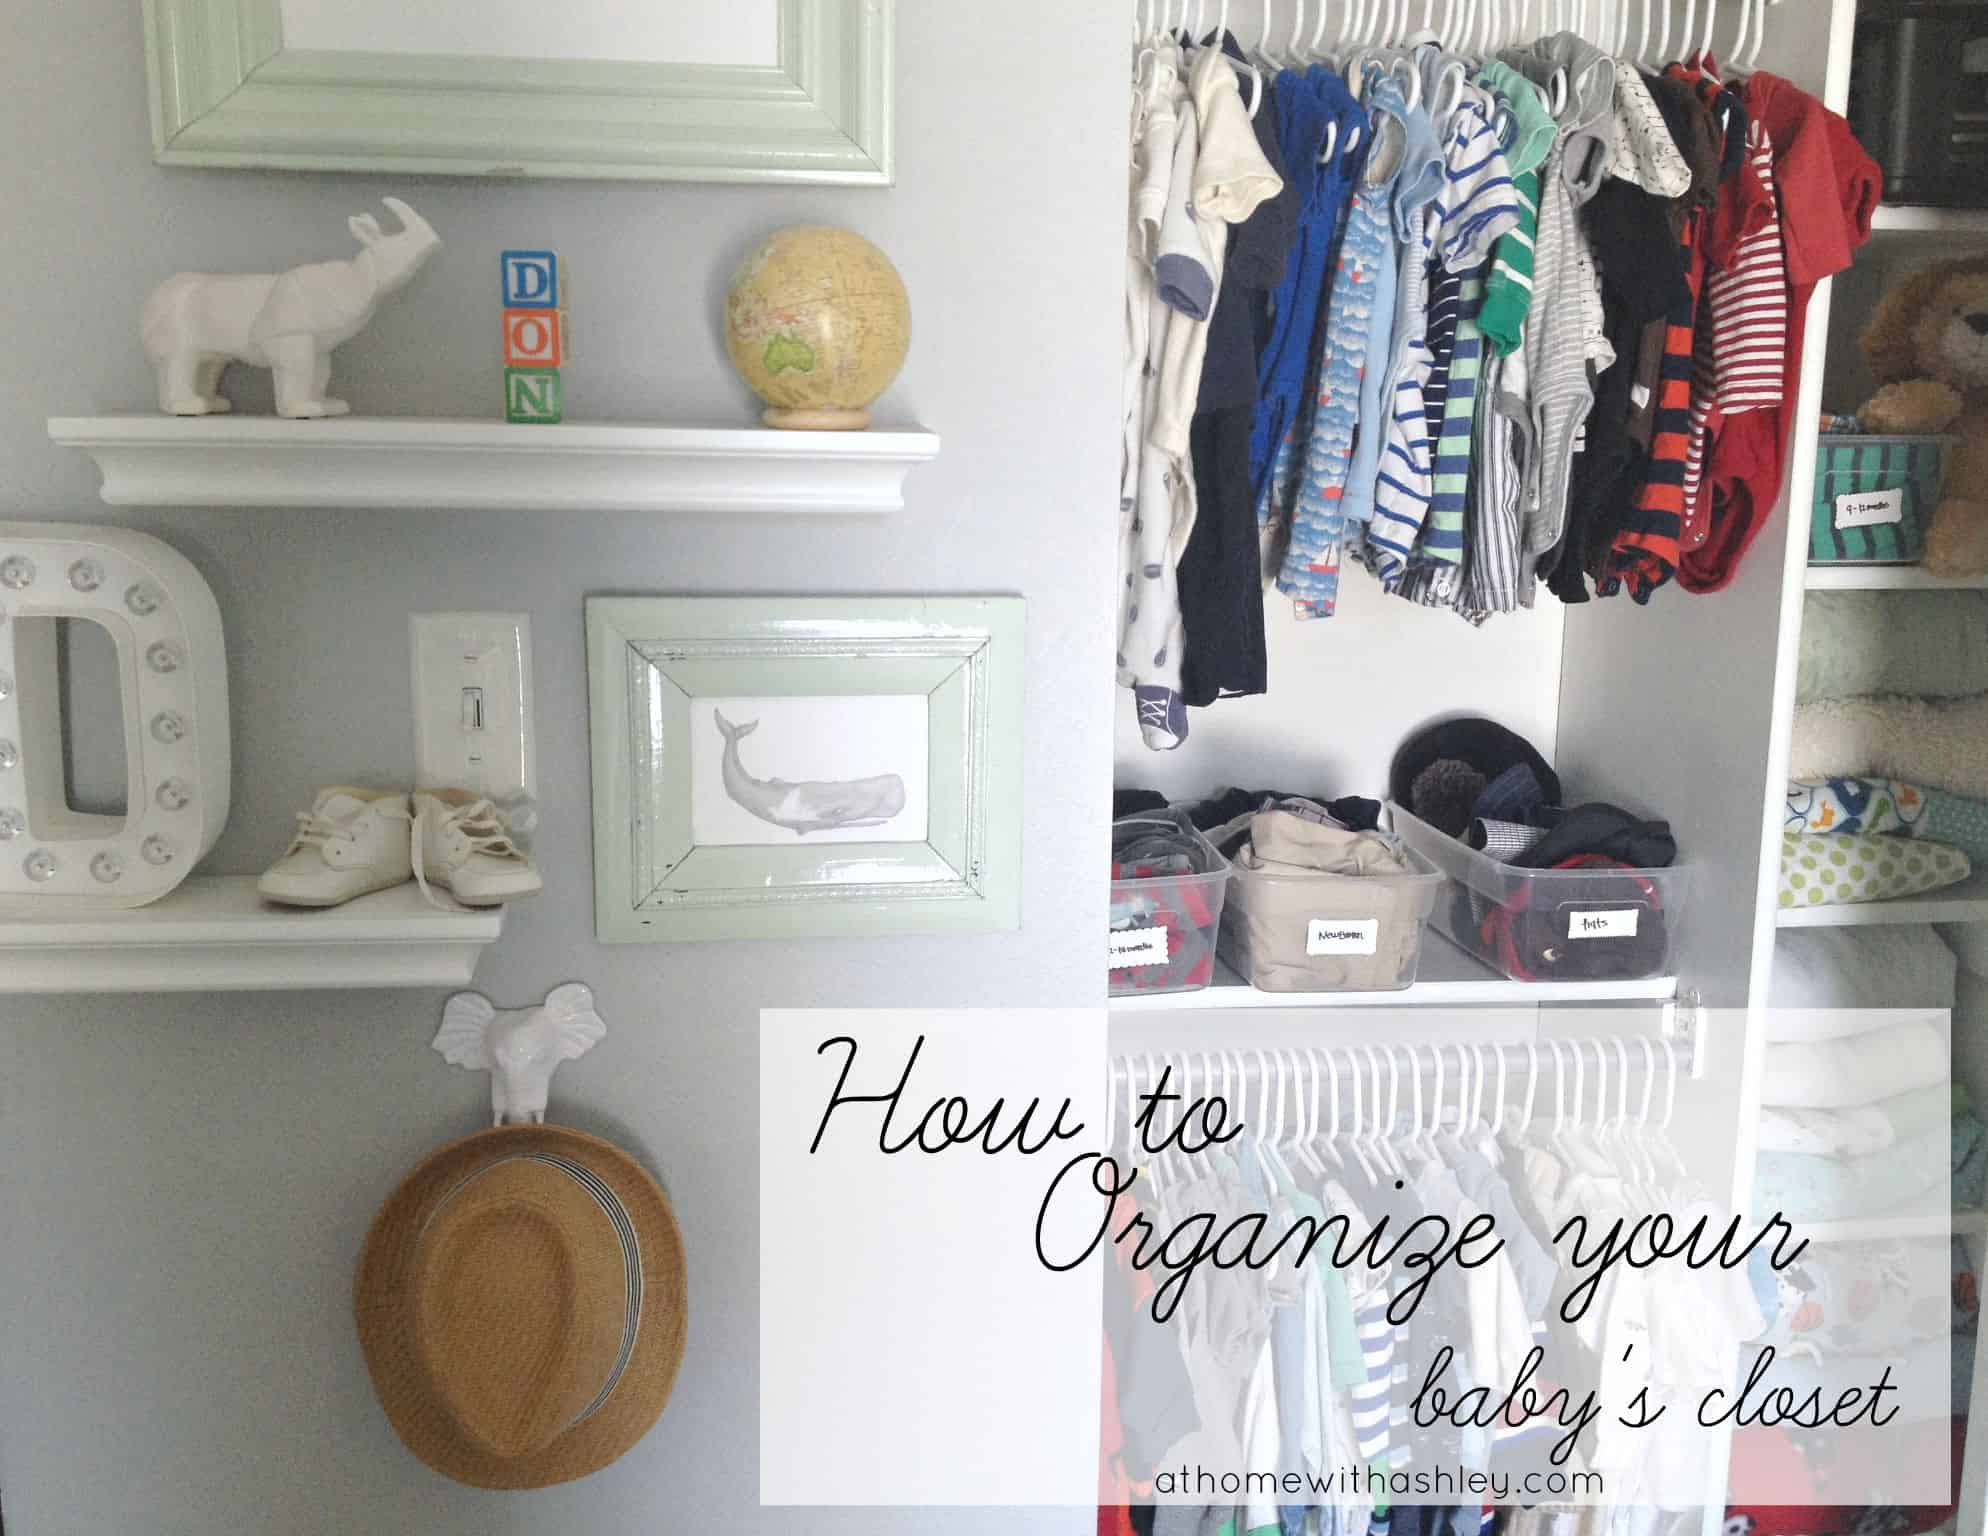 The Best Way To Organize Your Baby 39 S Closet At Home With